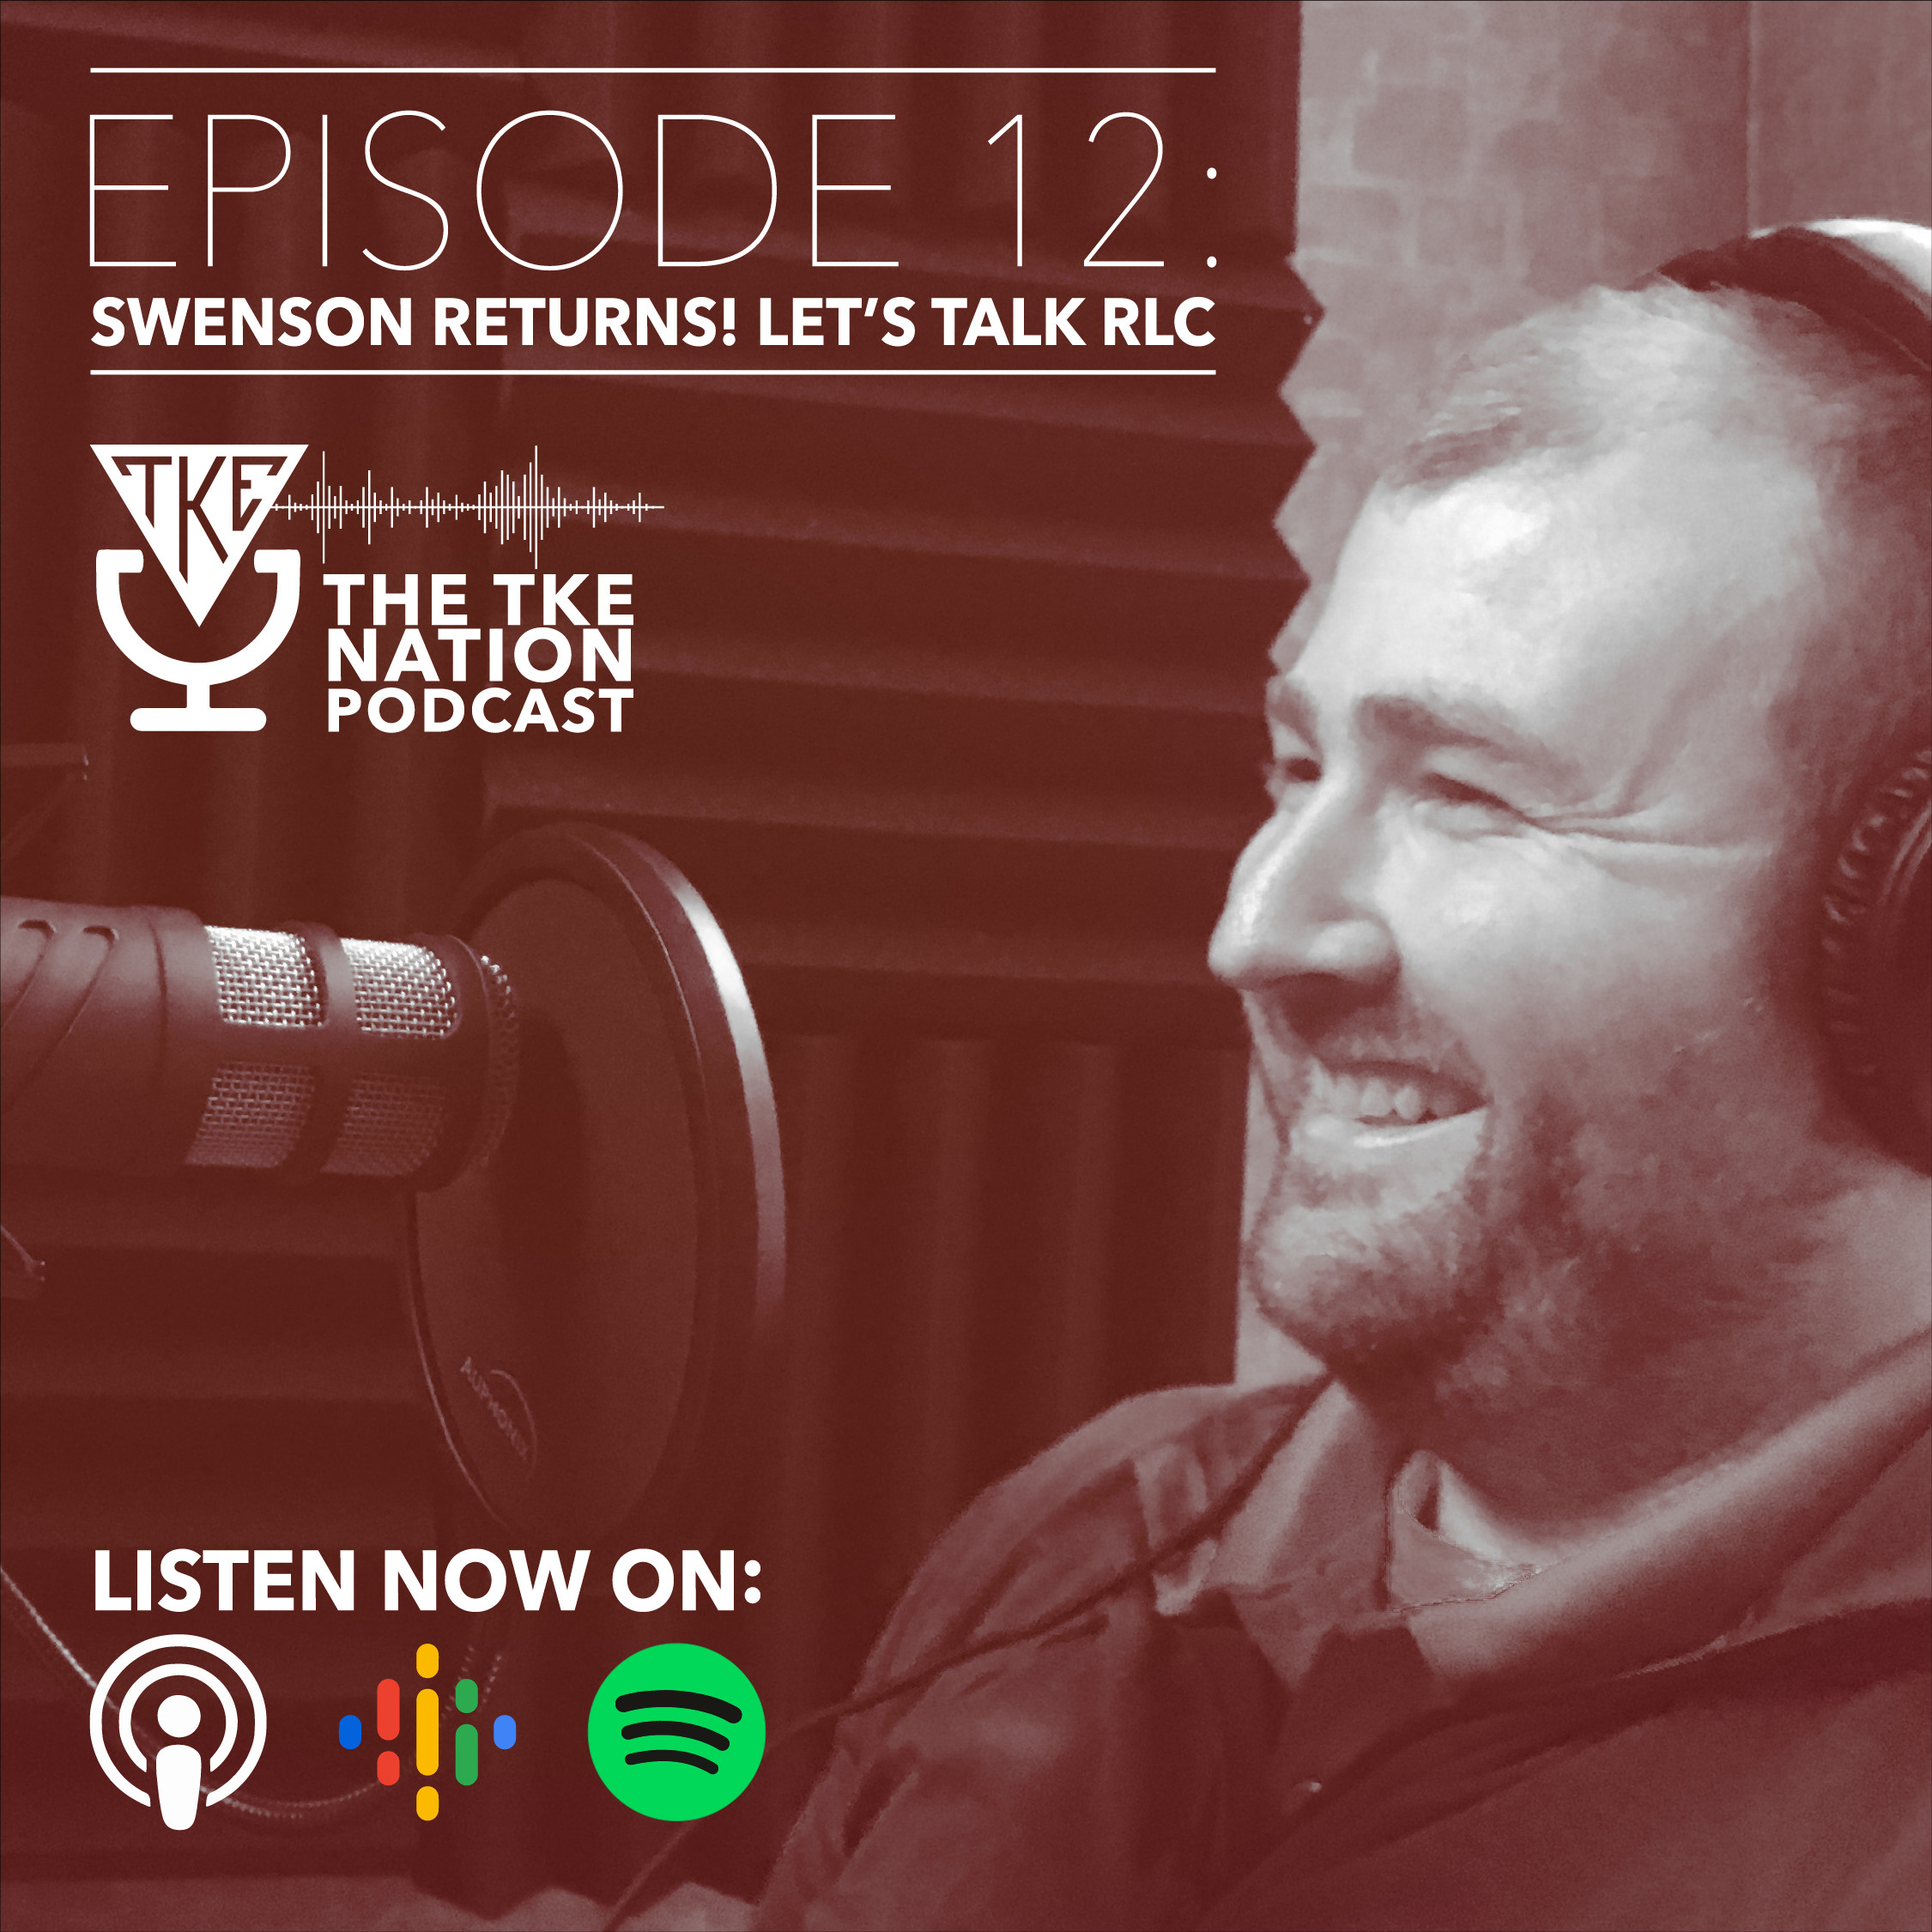 Swenson Returns! Let's talk RLC.